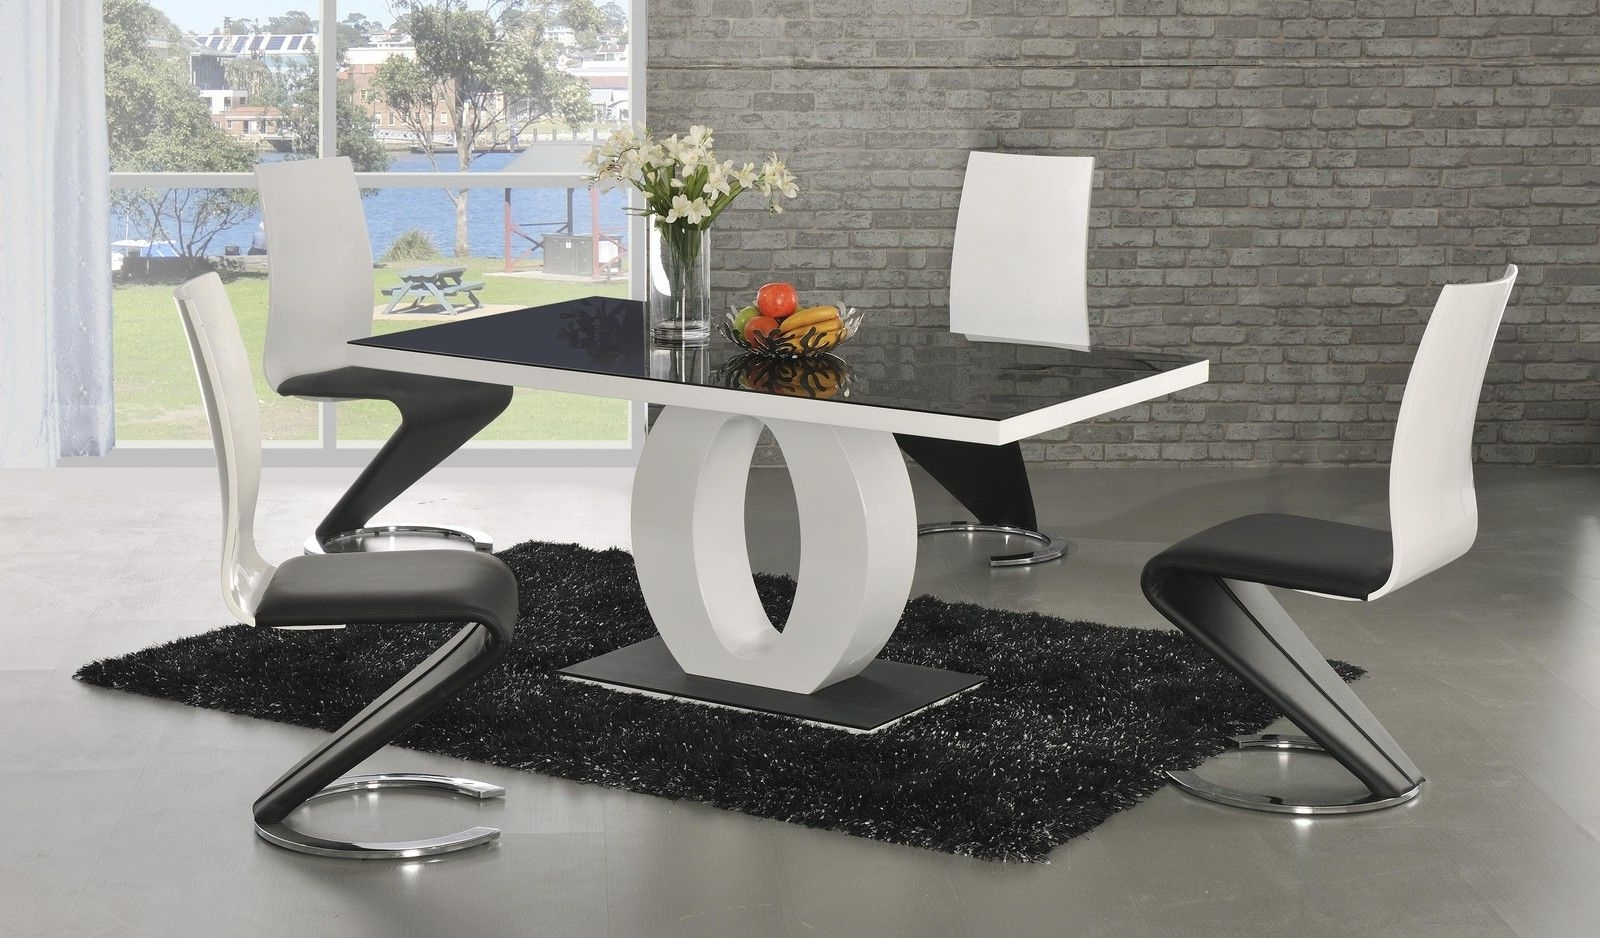 Ga Angel Black Glass White Gloss 160 Cm Designer Dining Set 4 6 Z with regard to Most Popular Modern Dining Table And Chairs